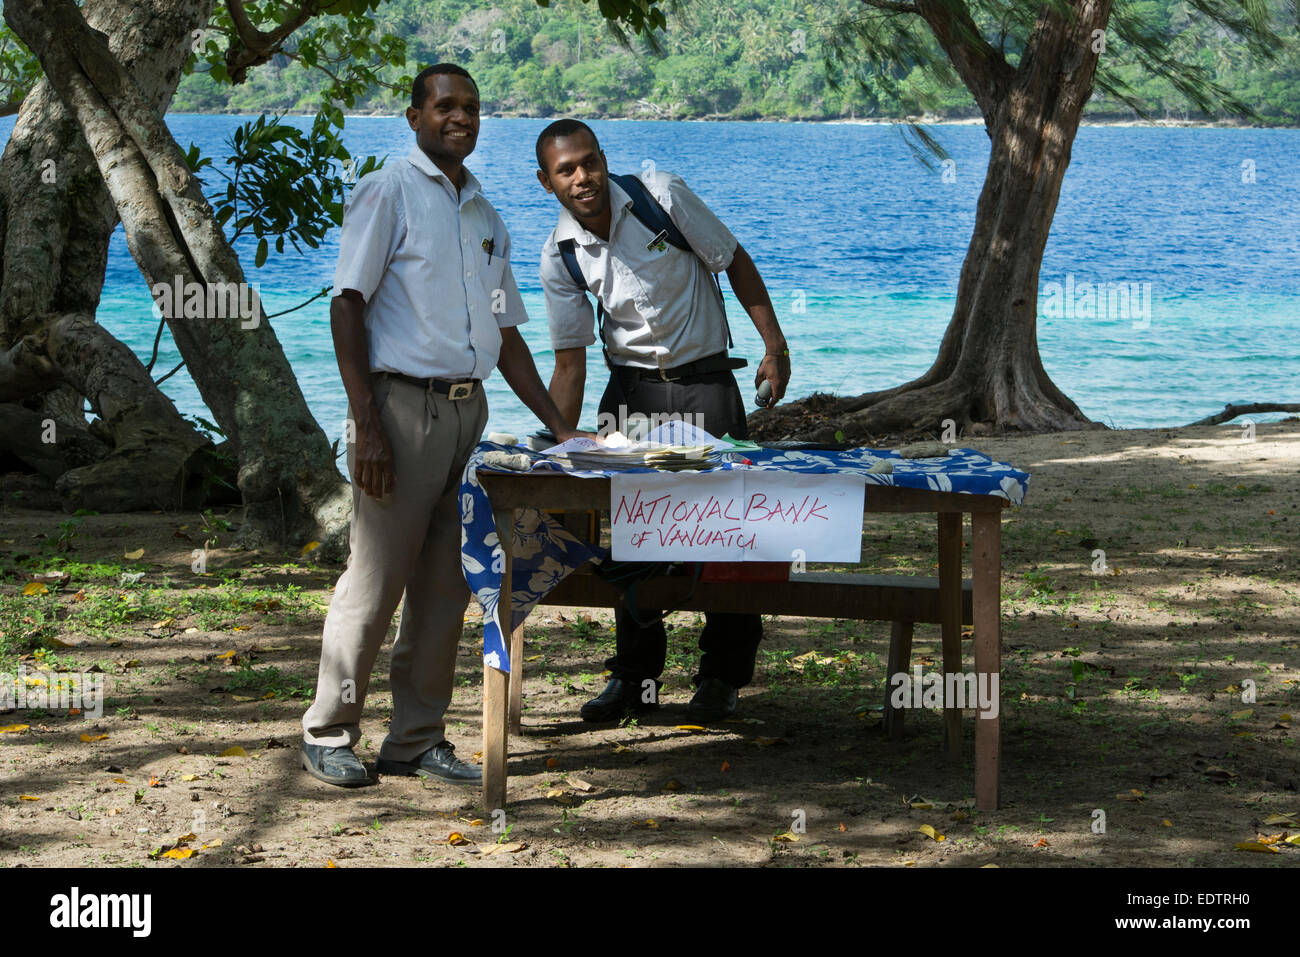 Melanesia, Vanuatu, Rano Island. Makeshift 'Bank of Vanuatu' set up along the beach for tourists to exchange - Stock Image